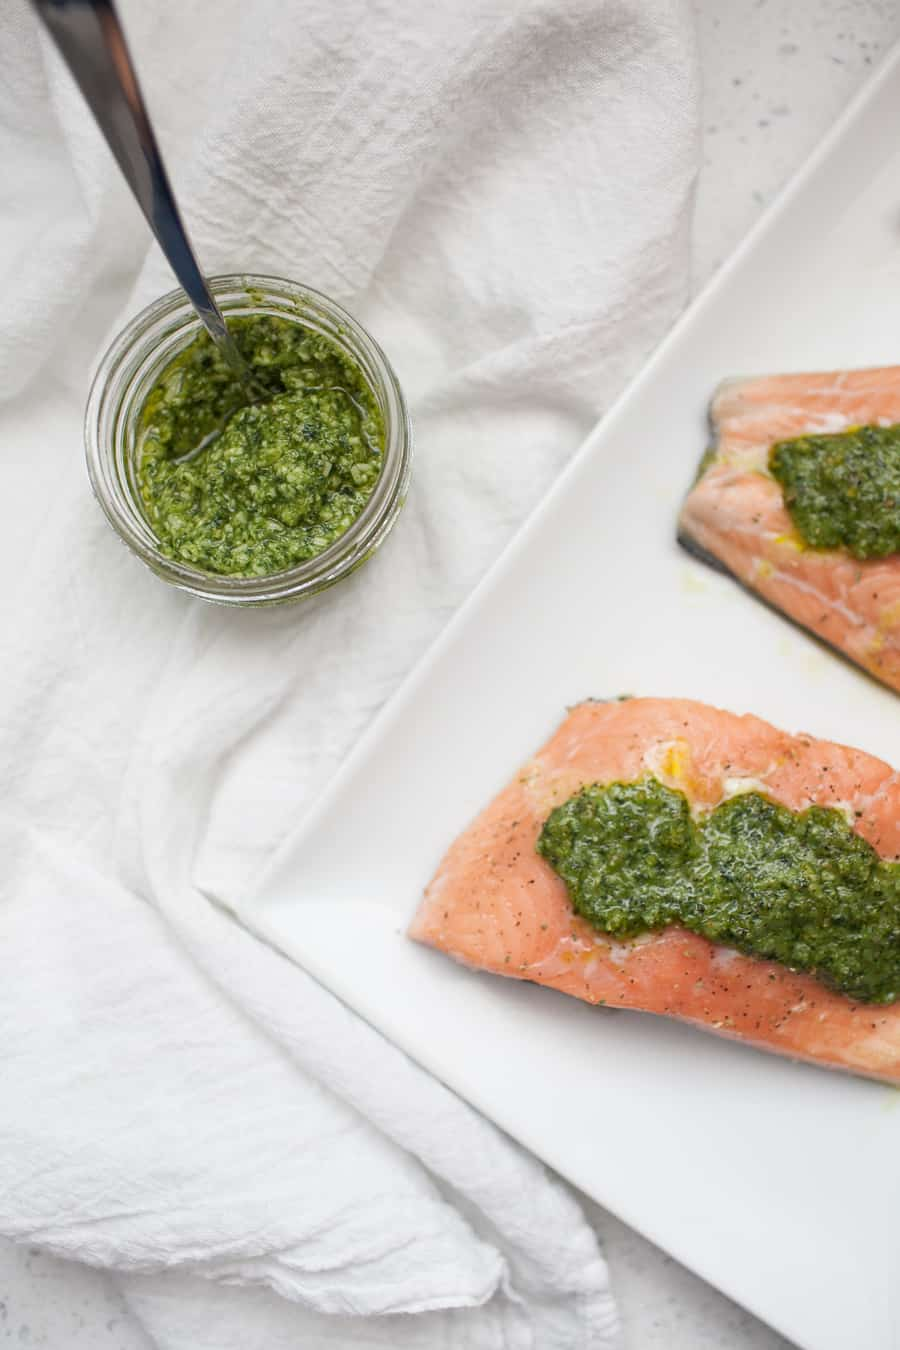 Pesto Baked Salmon Recipe If You're Looking For A Quick Dinner That Won'